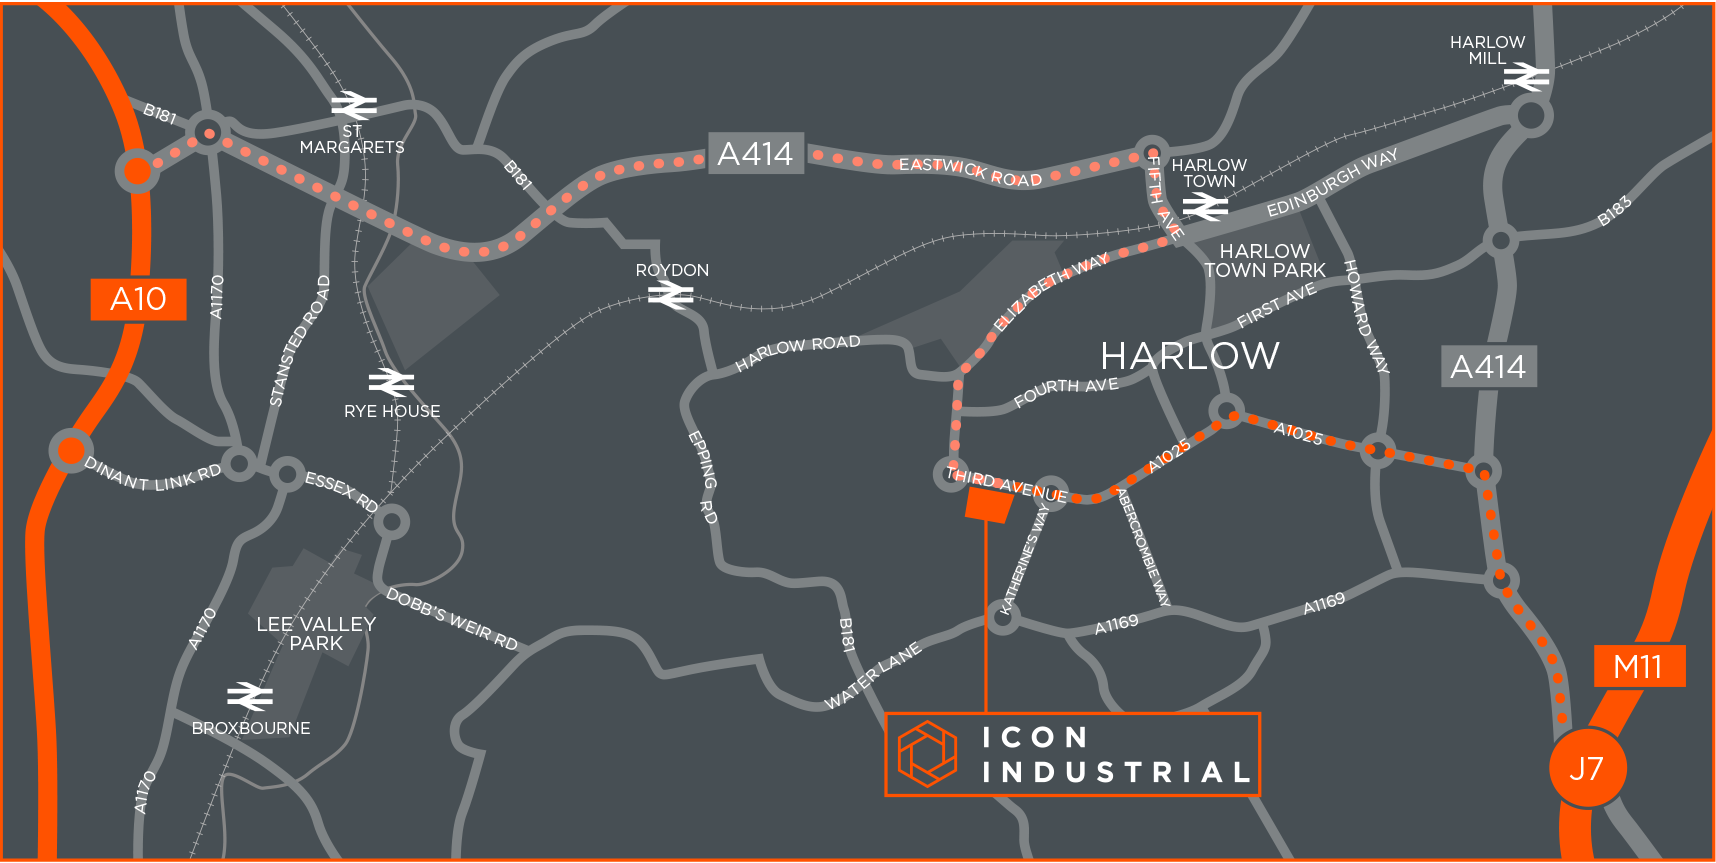 Icon industrial Harlow Sat Nav CM19 5AW